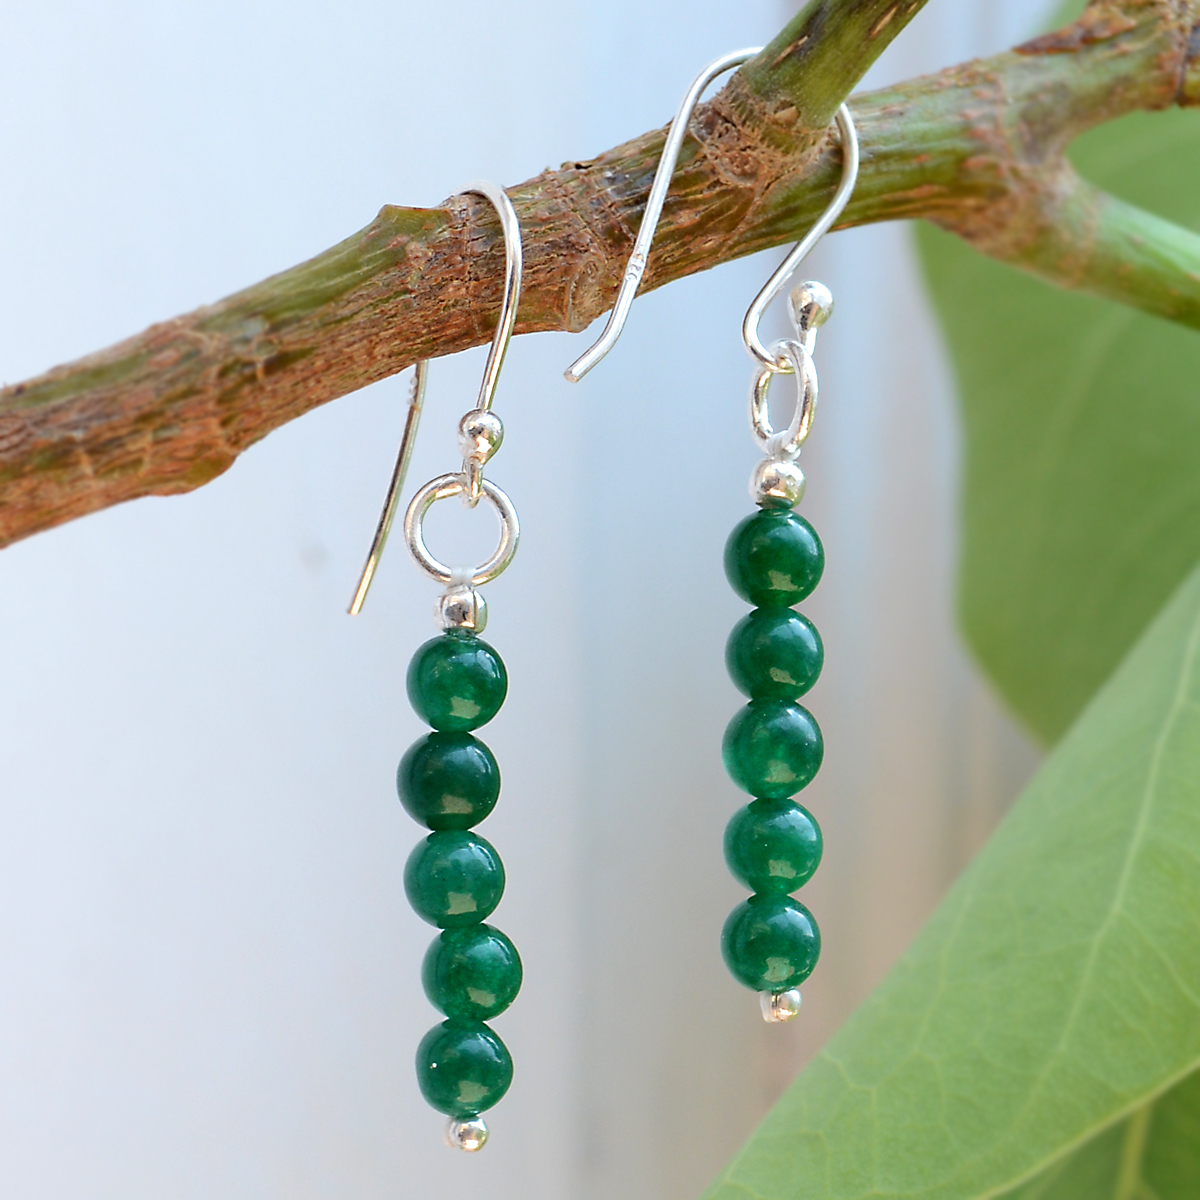 5 Beaded Set- Round Malachite- Handmade Jewelry Manufacturer 925 Sterling Silver- Celtic Dangle Earring Jaipur Rajasthan India